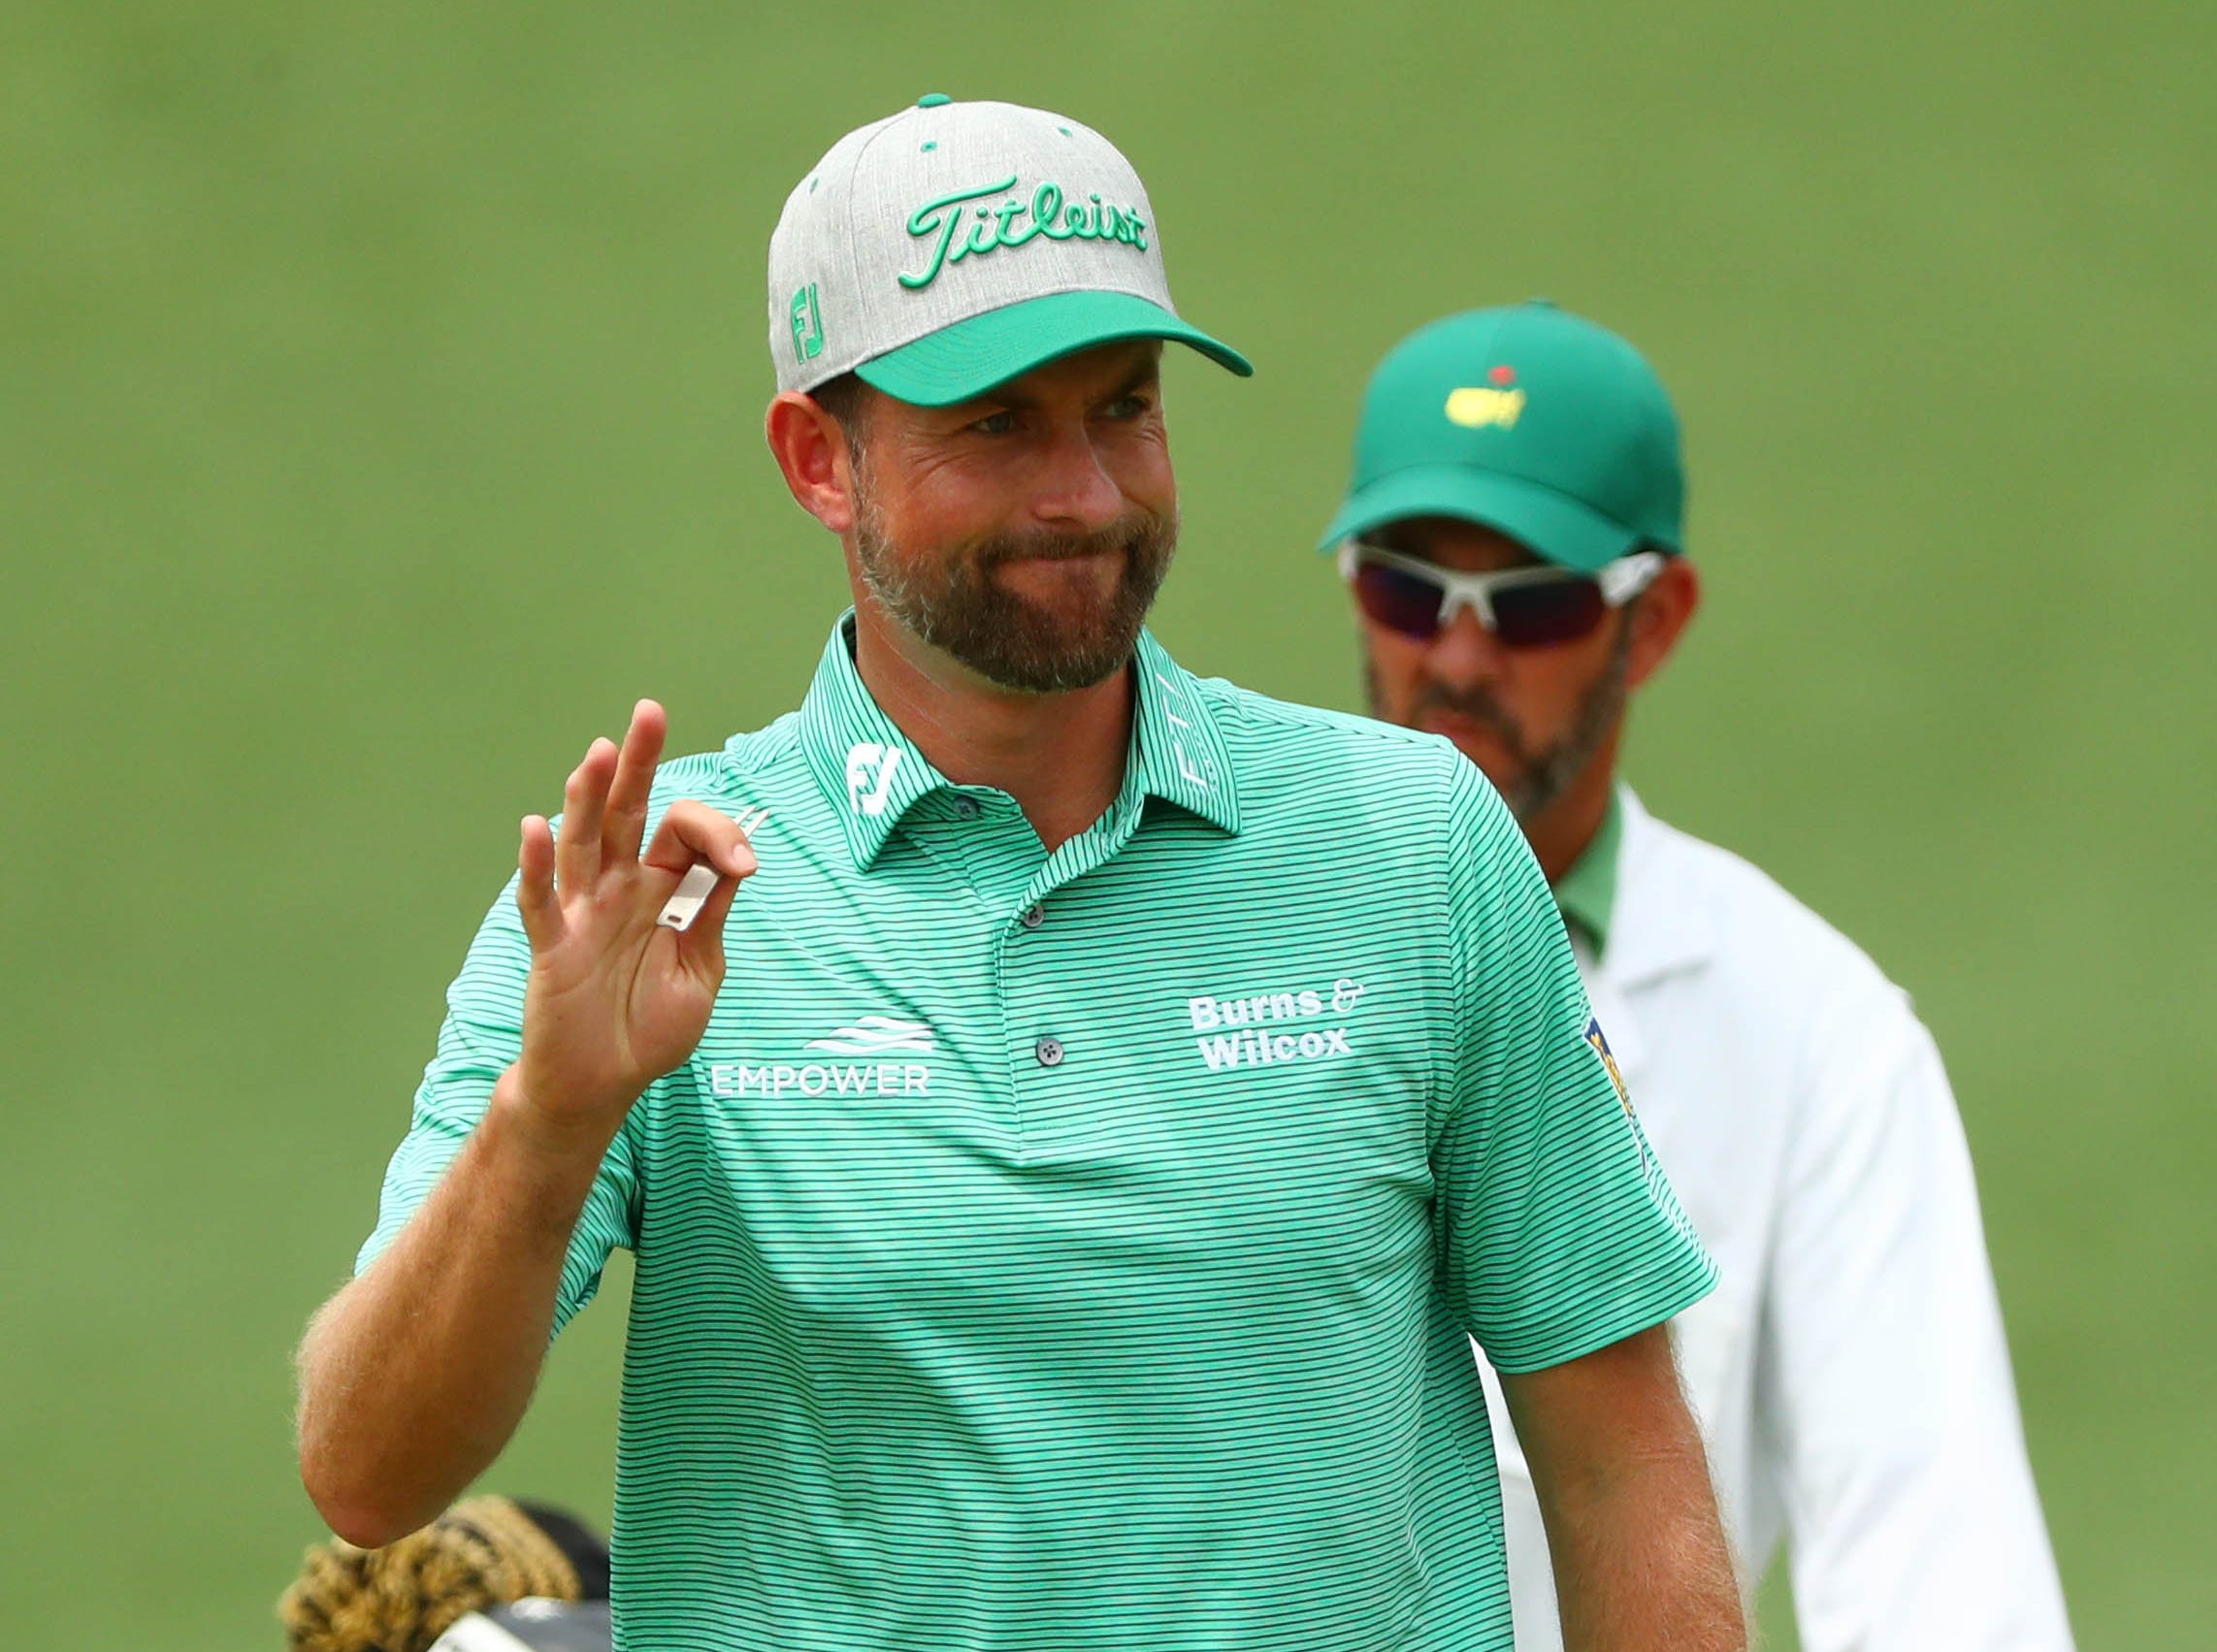 Apr 12, 2019; Augusta, GA, USA; Webb Simpson waves to the gallery on the 2nd green during the second round of The Masters golf tournament at Augusta National Golf Club. Mandatory Credit: Rob Schumacher-USA TODAY Sports